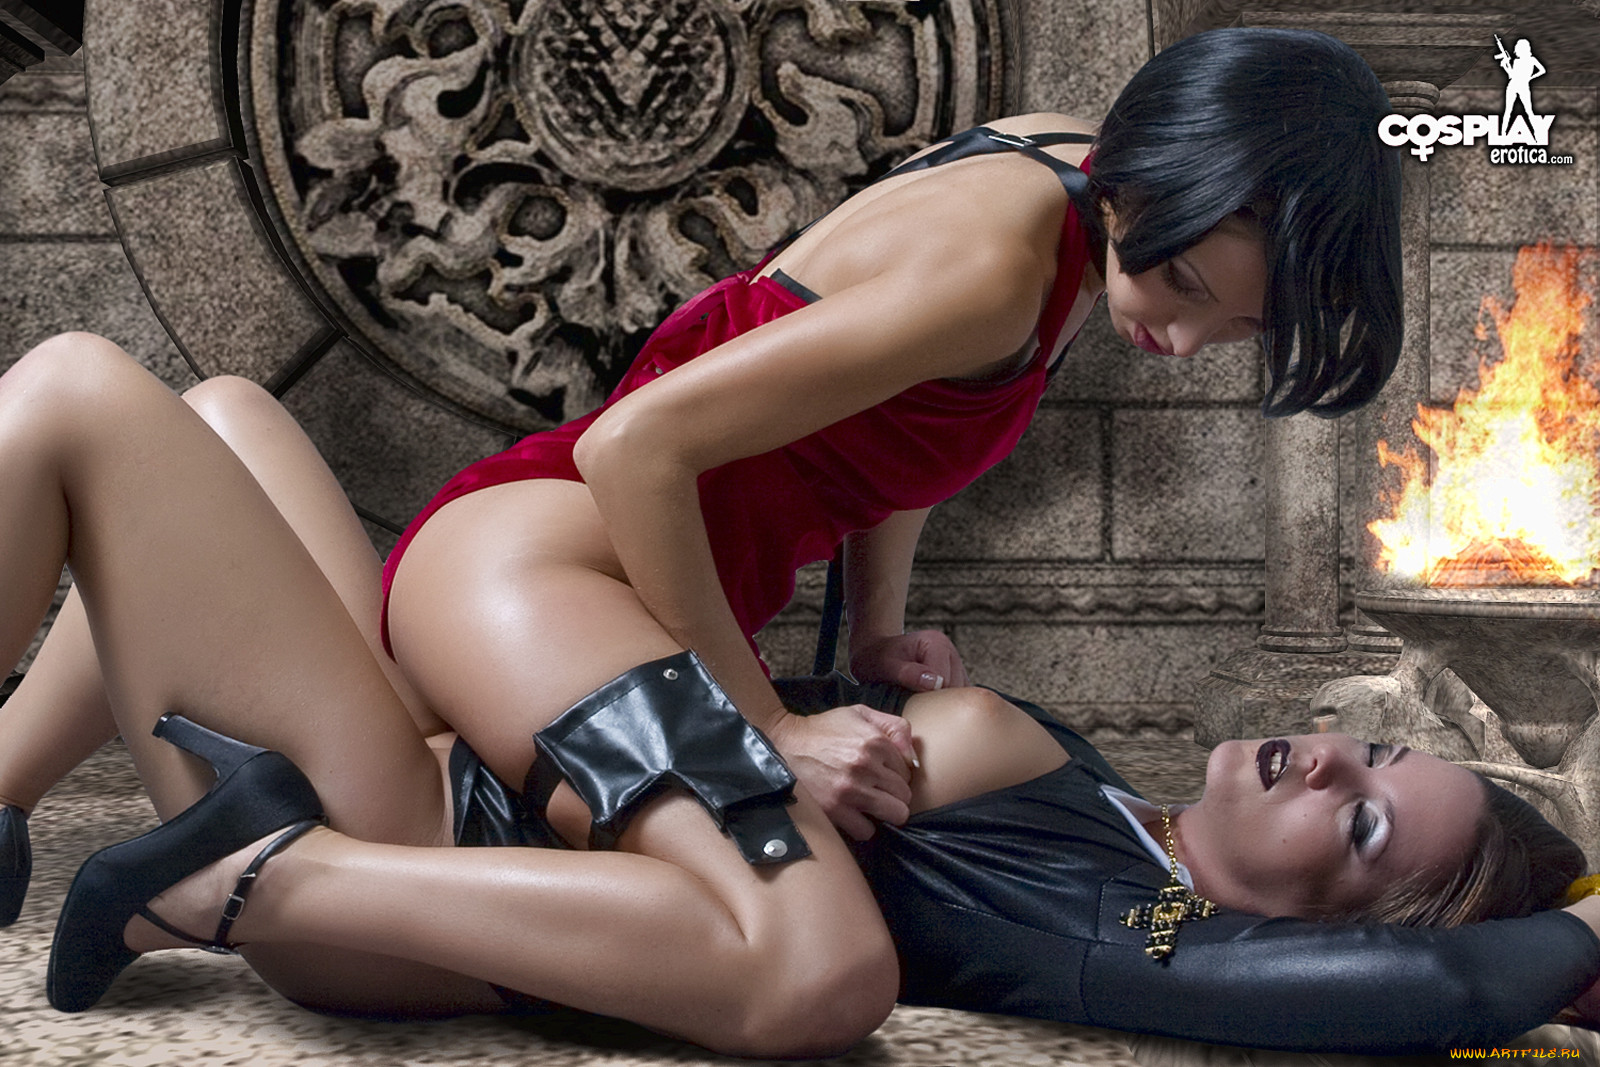 Fotos porno resident evil4 exploited photos